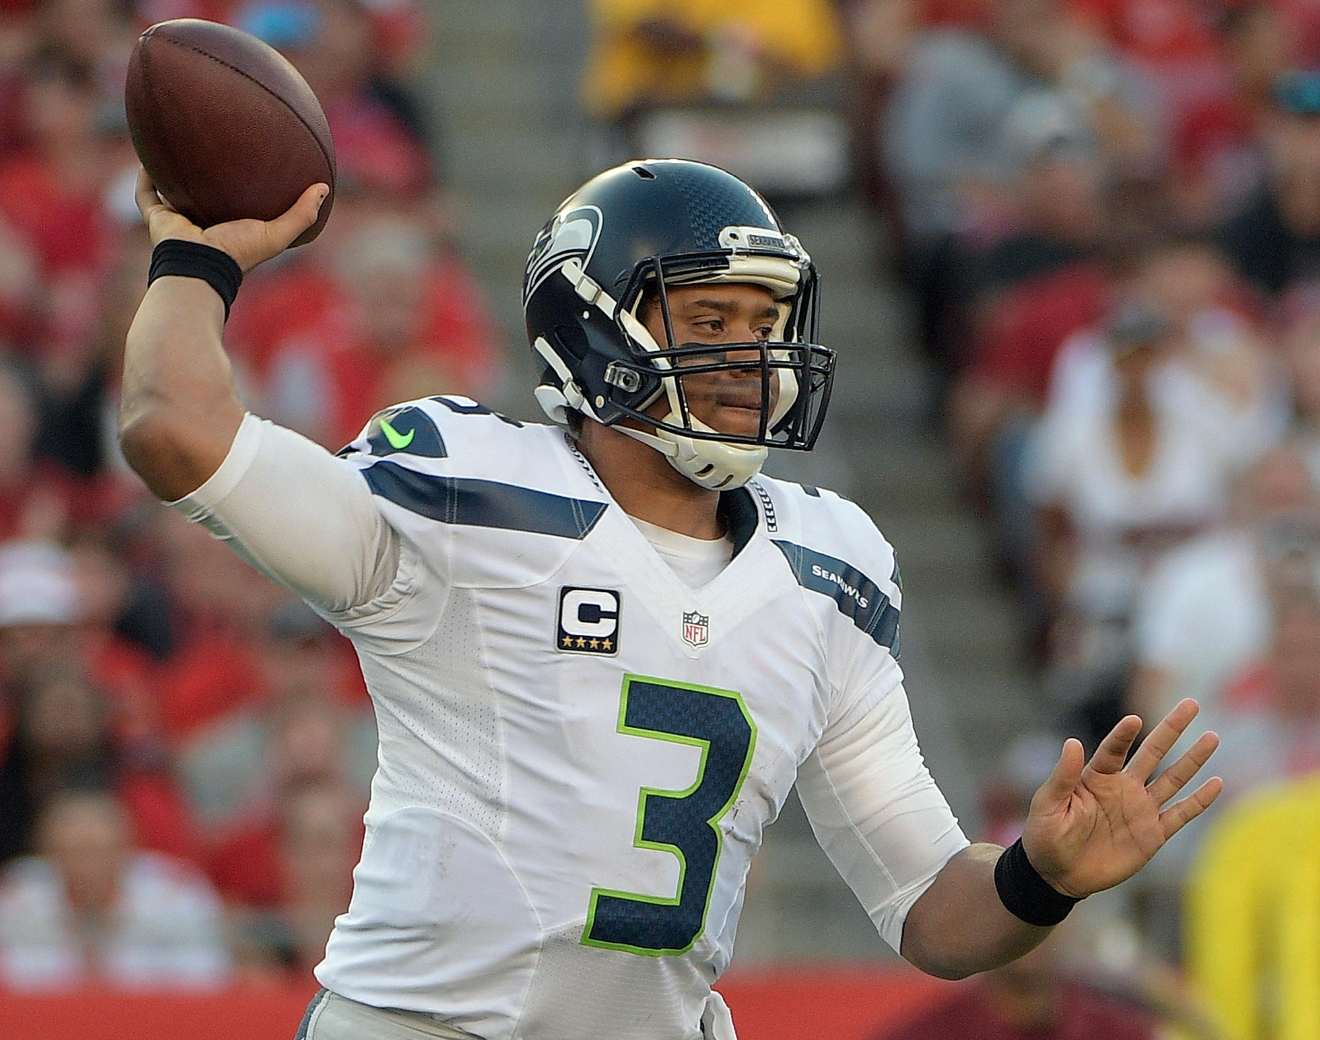 Seattle Seahawks quarterback Russell Wilson (3) throws a pass against the Tampa Bay Buccaneers during the first quarter of an NFL football game Sunday, Nov. 27, 2016, in Tampa, Fla. (AP Photo/Phelan Ebenhack)